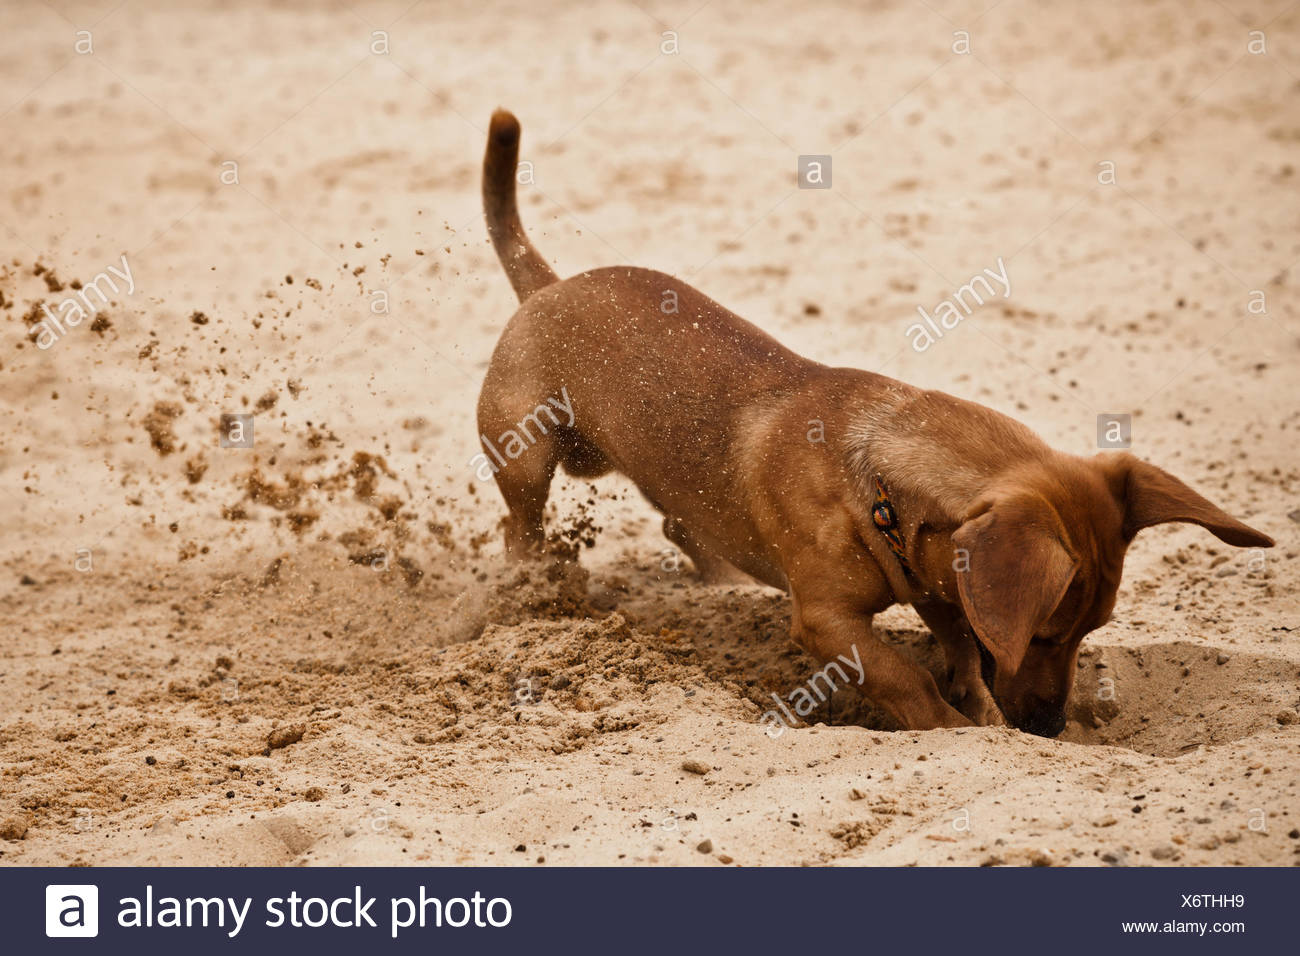 Funny Dachshund Puppy Is Digging Hole On Beach Sand Stock Photo Alamy